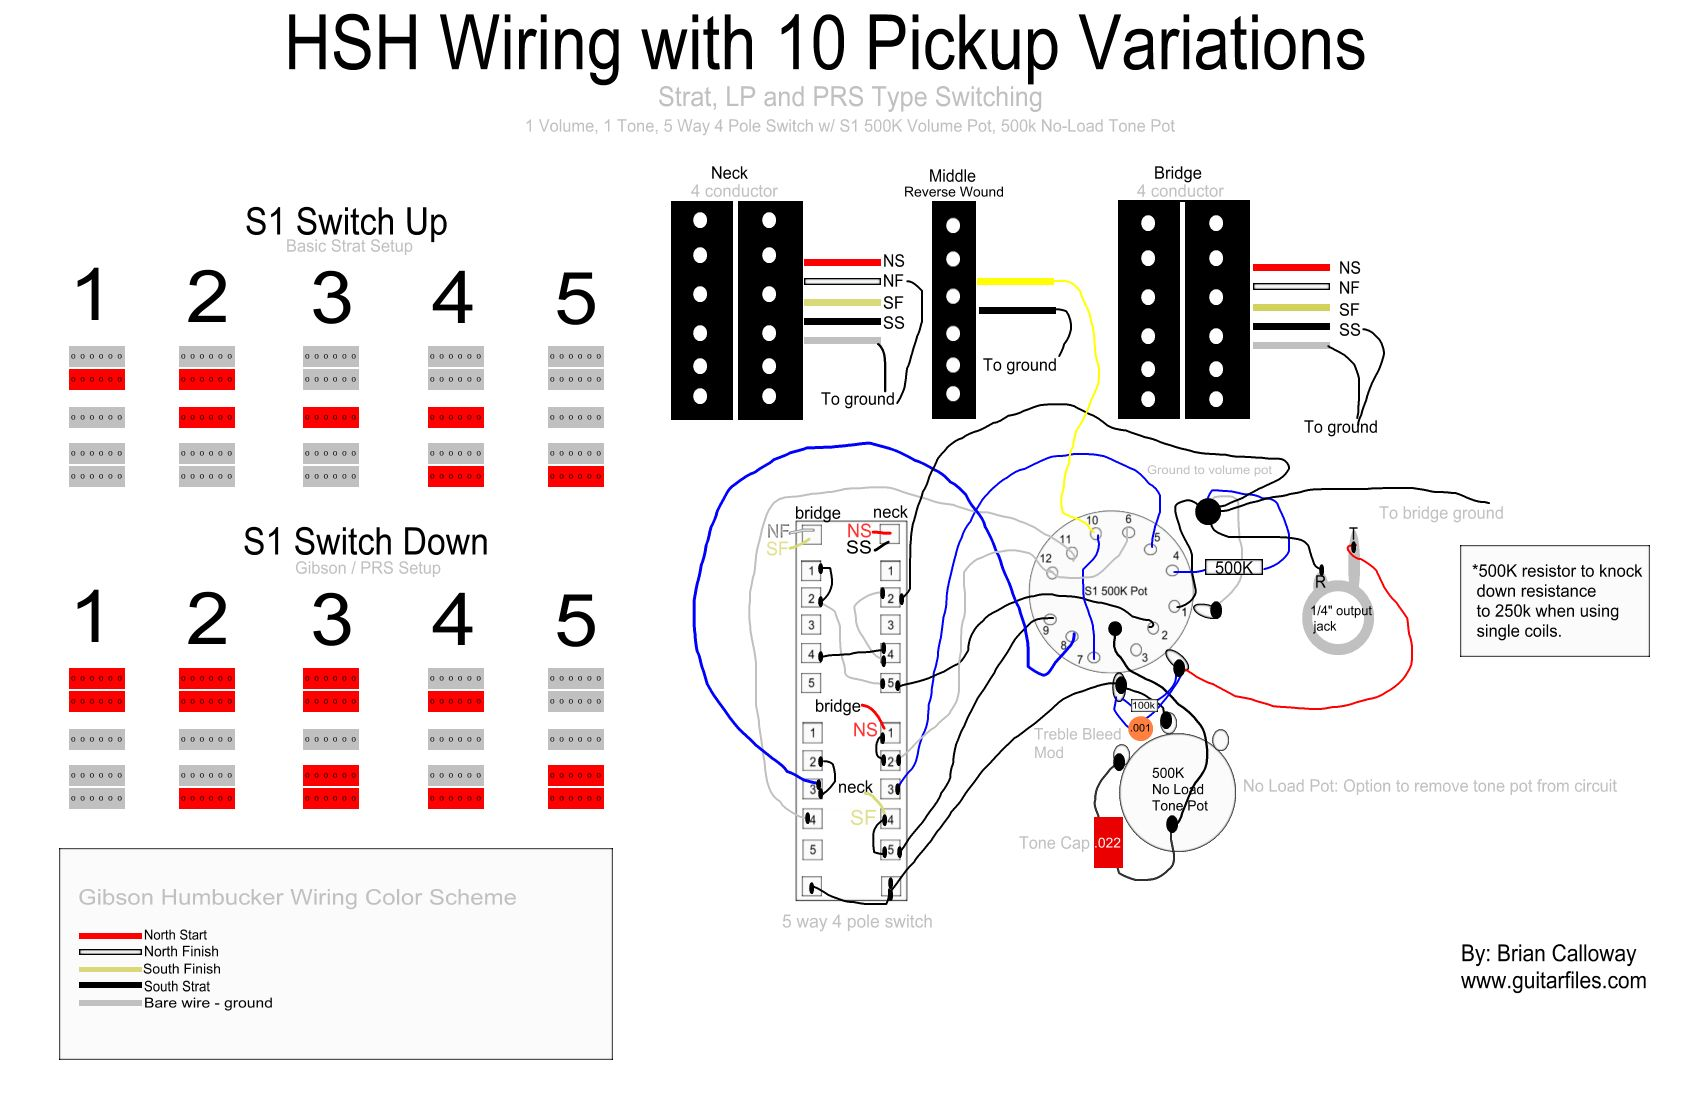 HSH Guitar Wiring  10    Pickup    Combinations 4 Pole Switch